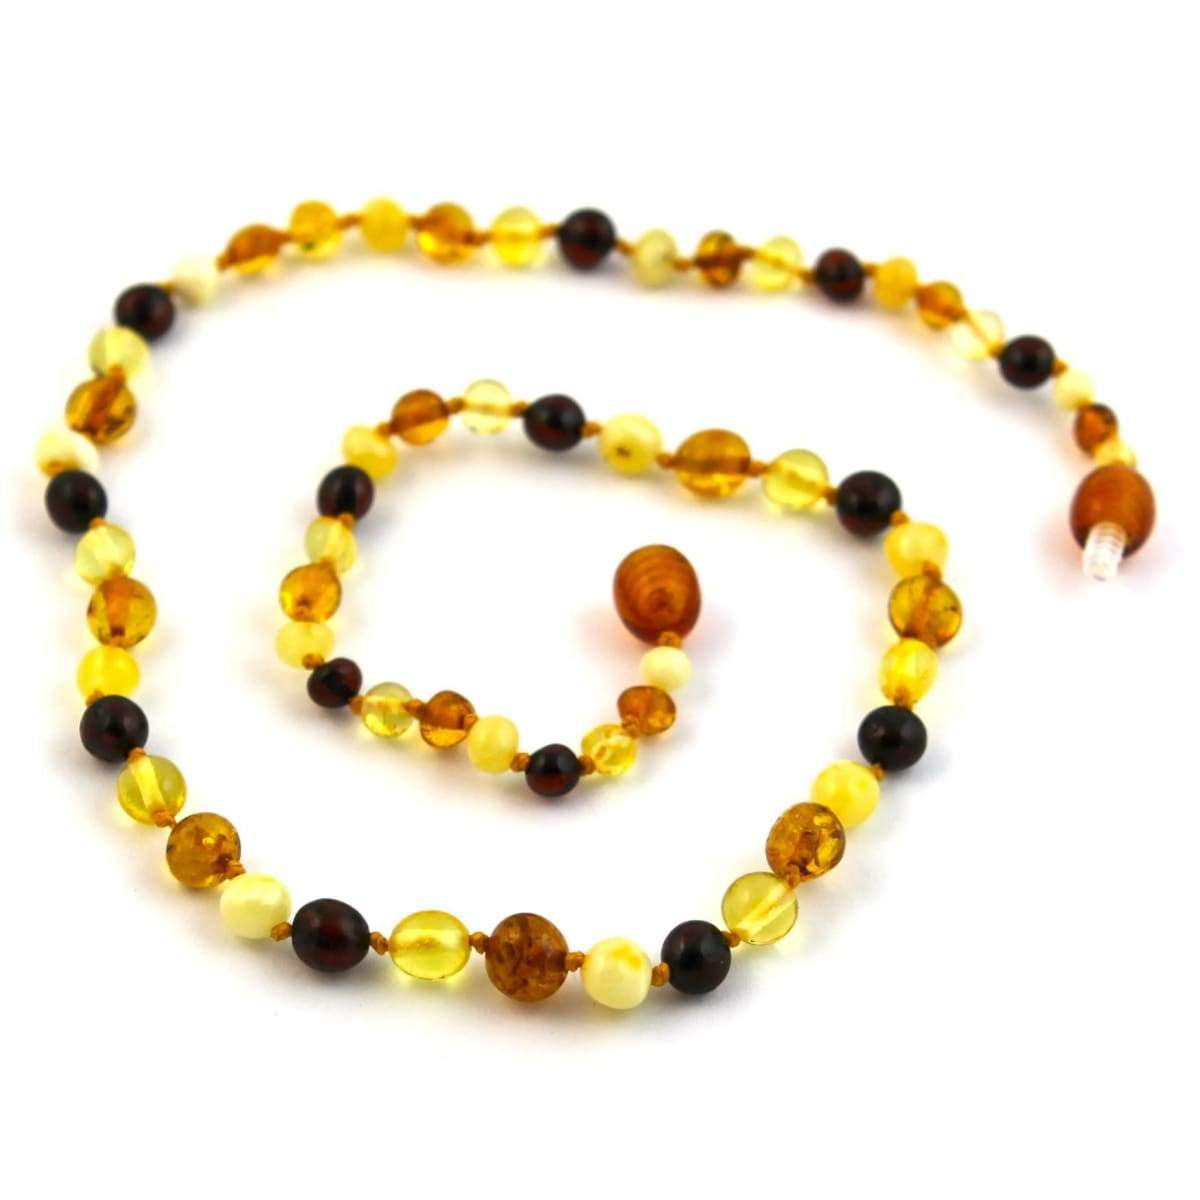 Baltic Amber Multicolored Round - 16 Necklace - Baltic Amber Jewelry